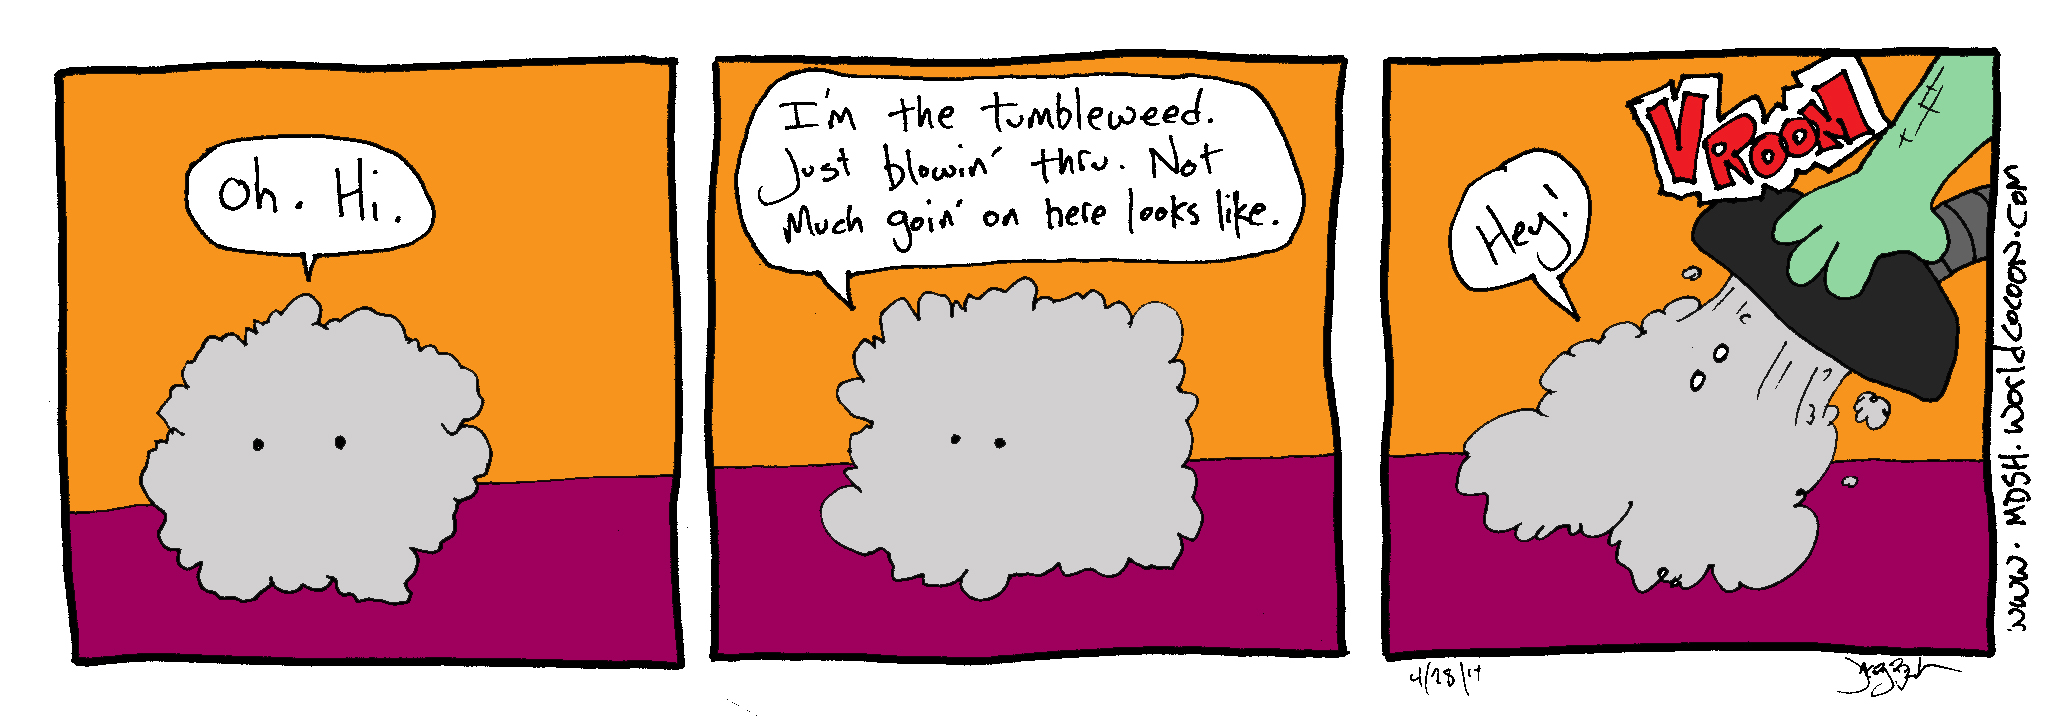 04/28/2014 – the dustball that thought it was a tumbleweed